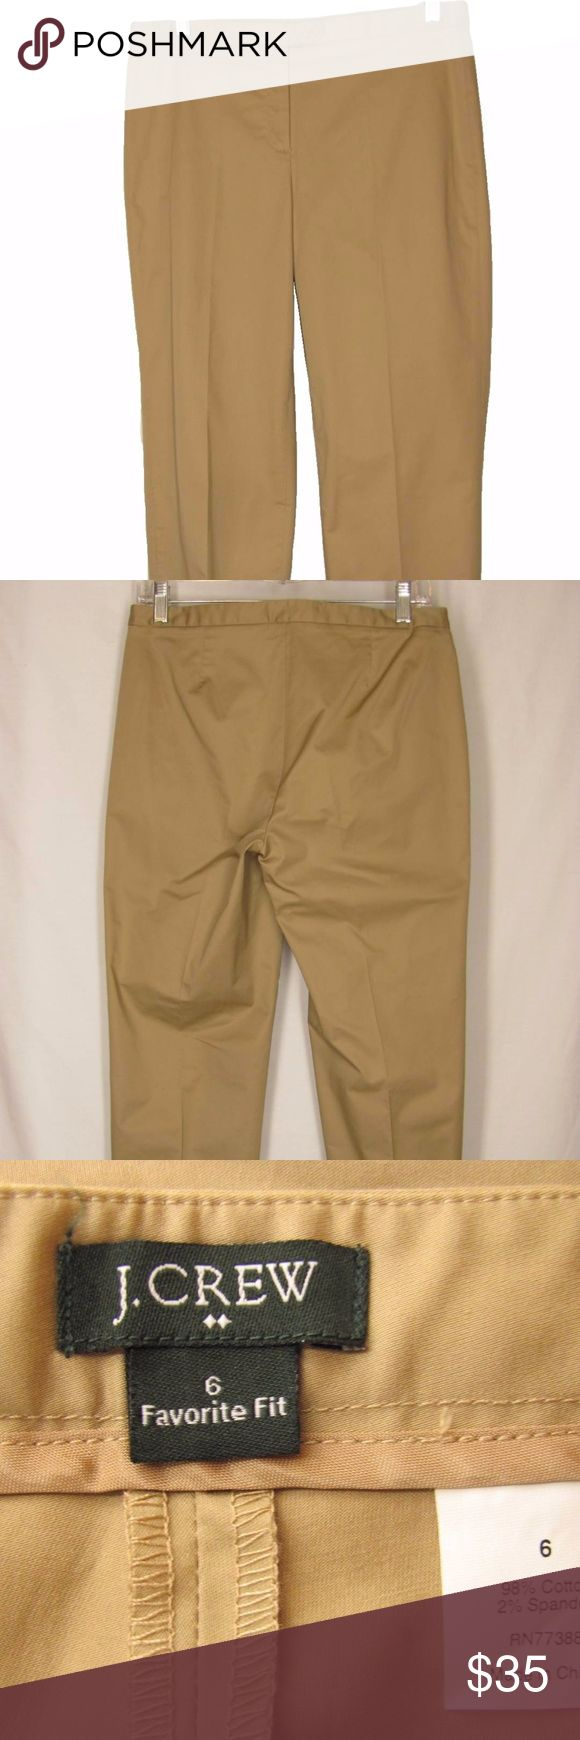 """J Crew Khaki Beige Pants Size 6 Favorite Fit J Crew Favorite Fit khaki pants in womens size 6. These have some stretch and no pockets for a smooth slim look! Front zipper and button closure. There is a slight sheen to the fabric. New, without tags!  15"""" across the waist 9 1/2"""" front rise 19 1/2"""" across hips 26 inches inseam  140510-428-1 J. Crew Pants Ankle & Cropped"""